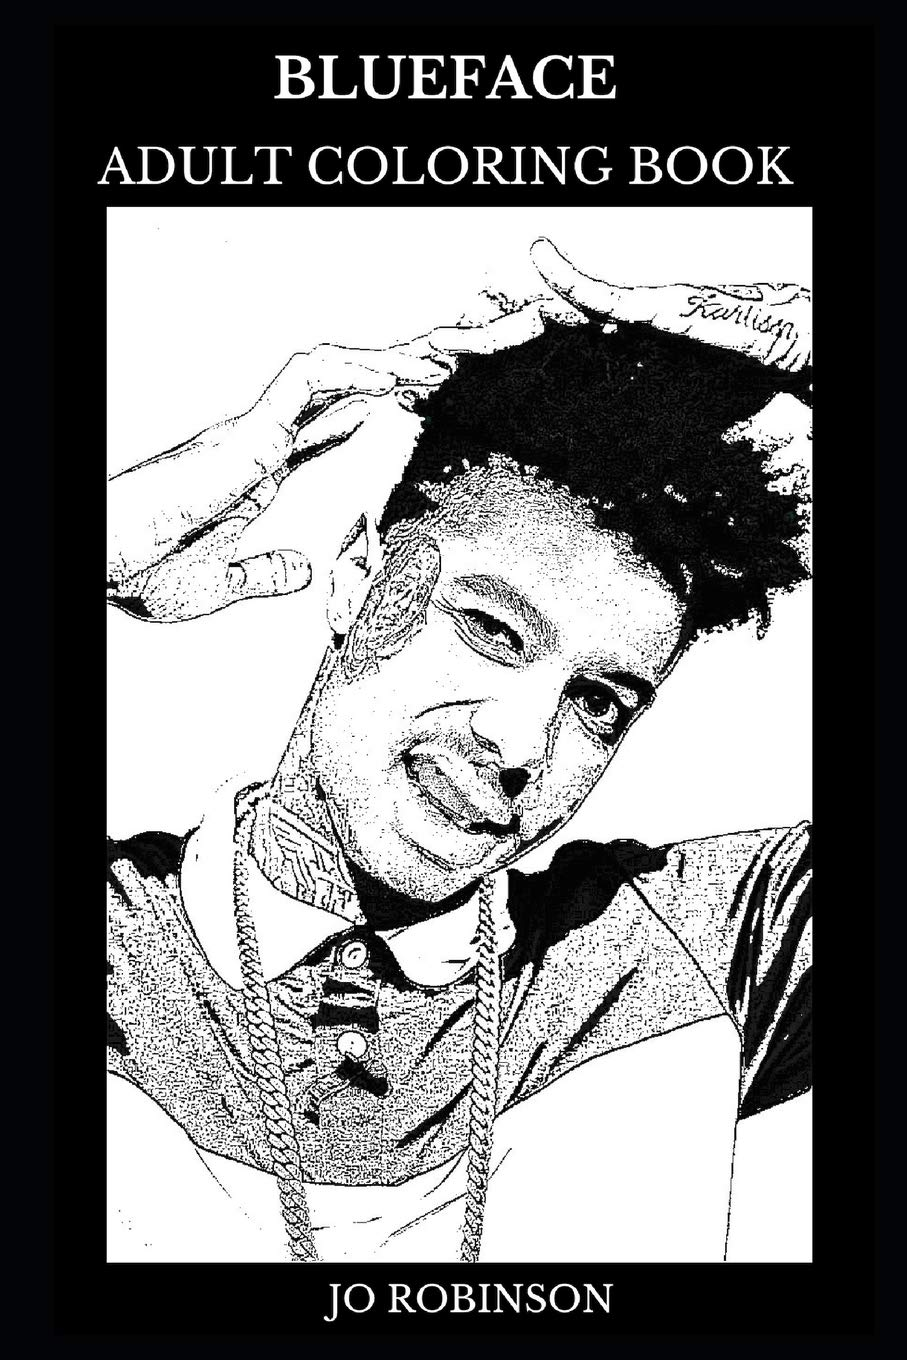 Blueface Adult Coloring Book: West Coast Hip Hop Prodigy and Trap